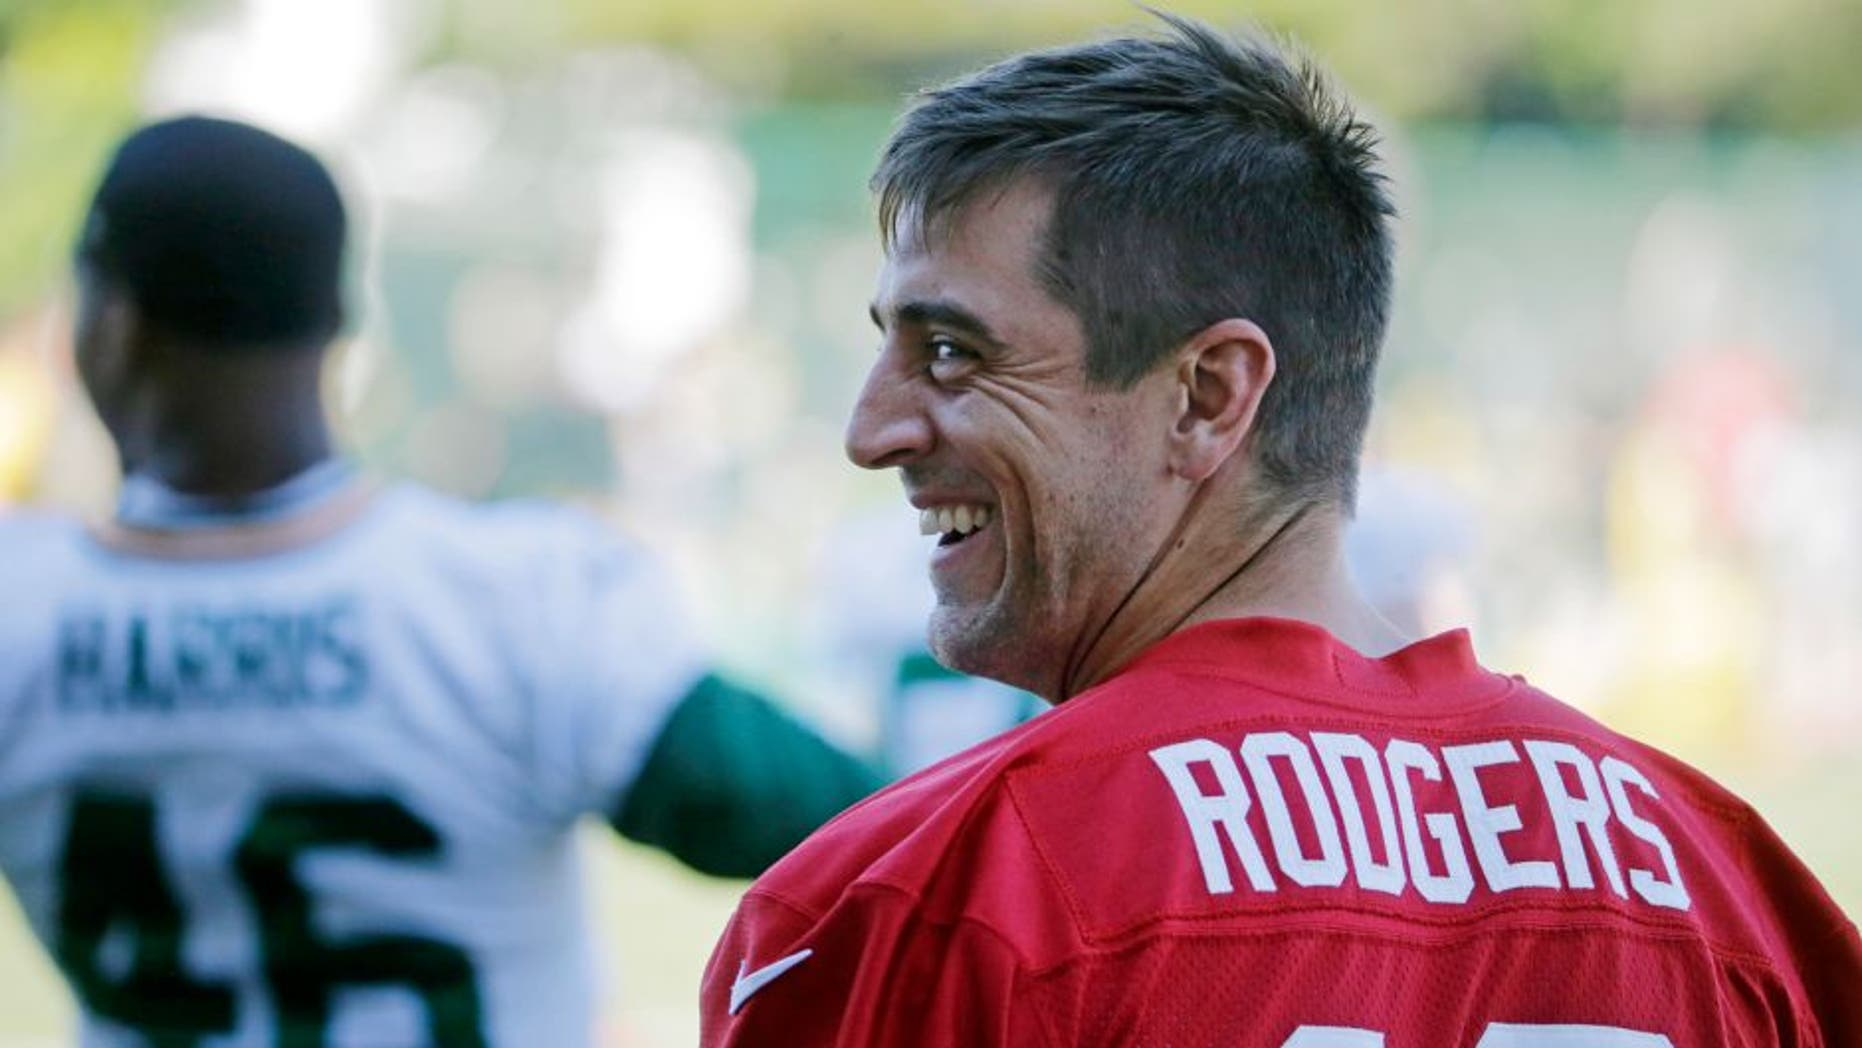 Green Bay Packers' Aaron Rodgers smiles during NFL football minicamp, Tuesday, June 16, 2015, in Green Bay, Wis. (AP Photo/Morry Gash)